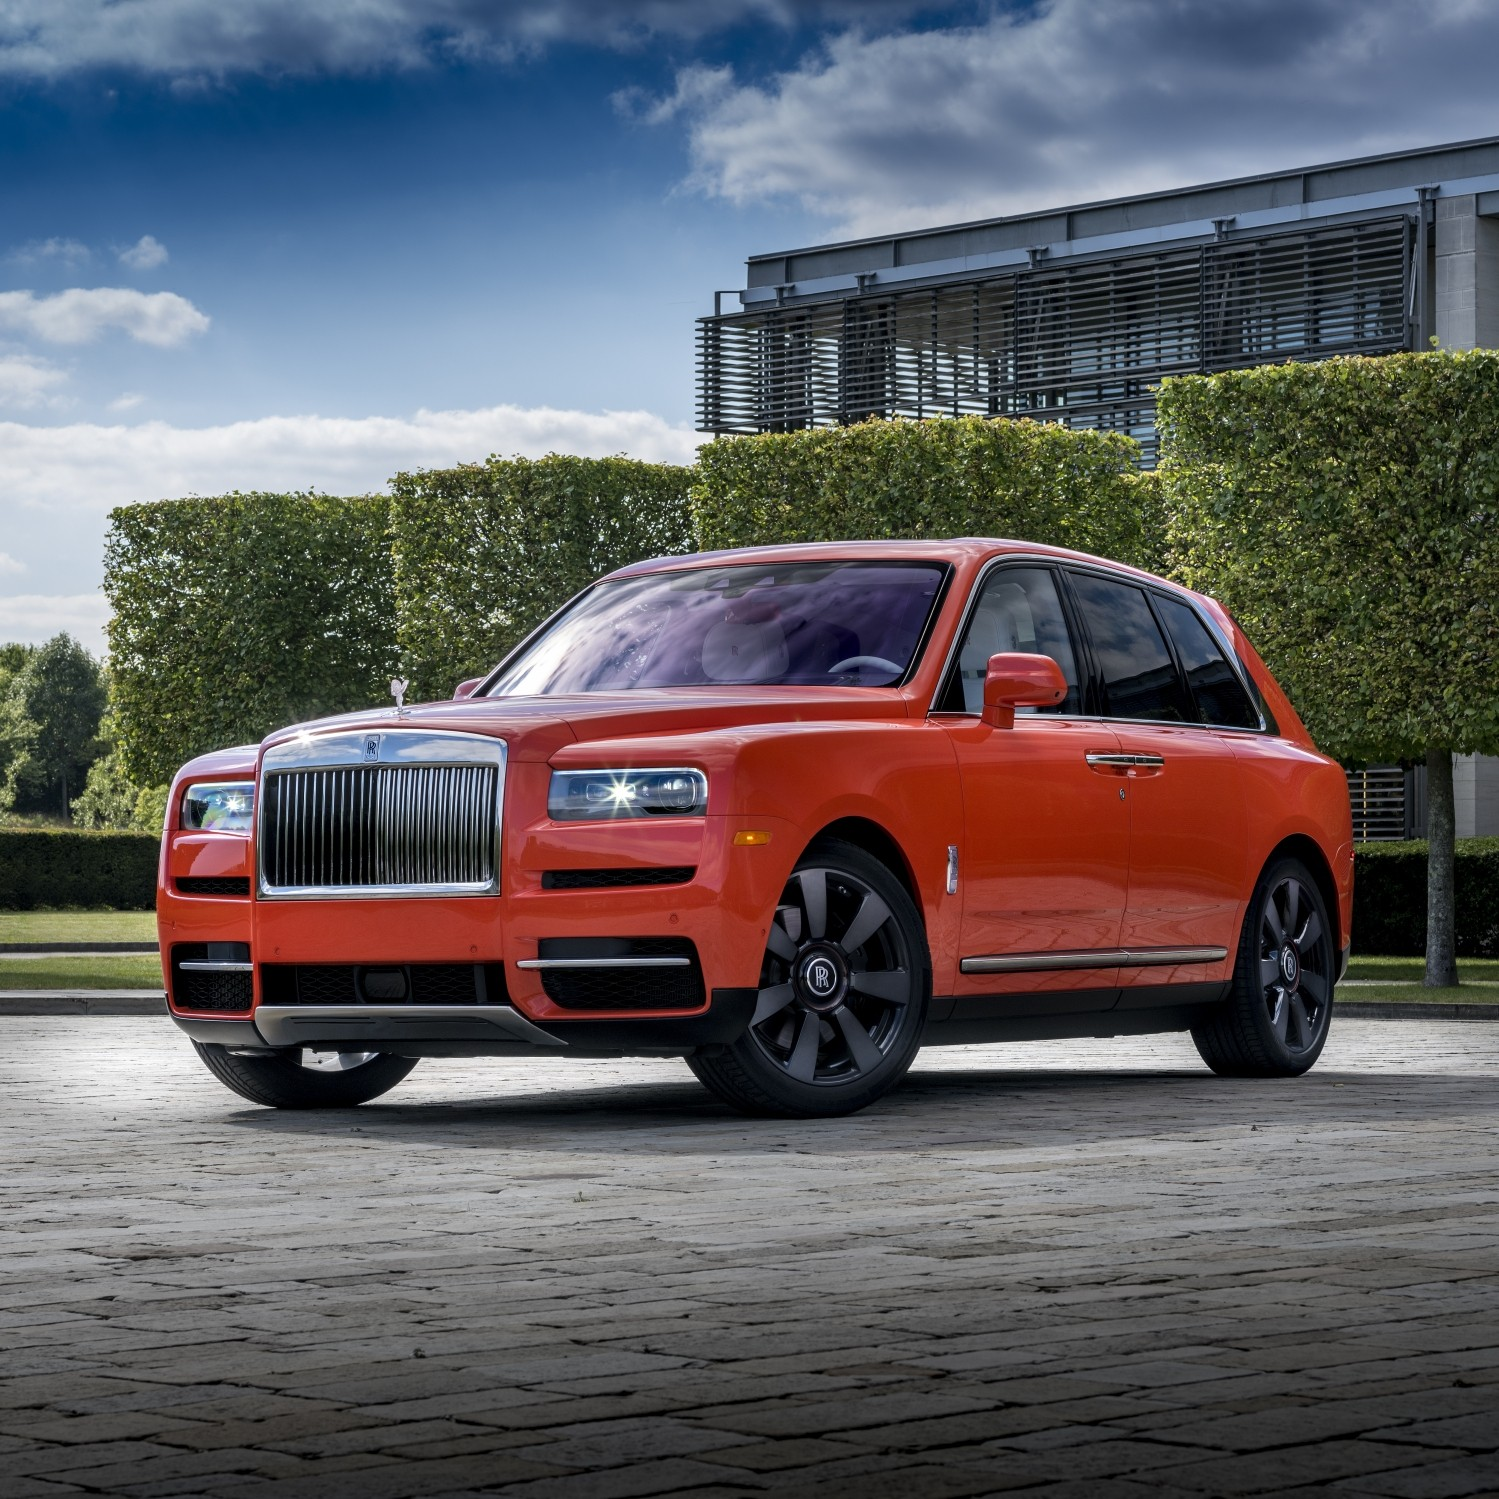 Specs and price of 2021 Rolls Royce Cullinan in Nigeria